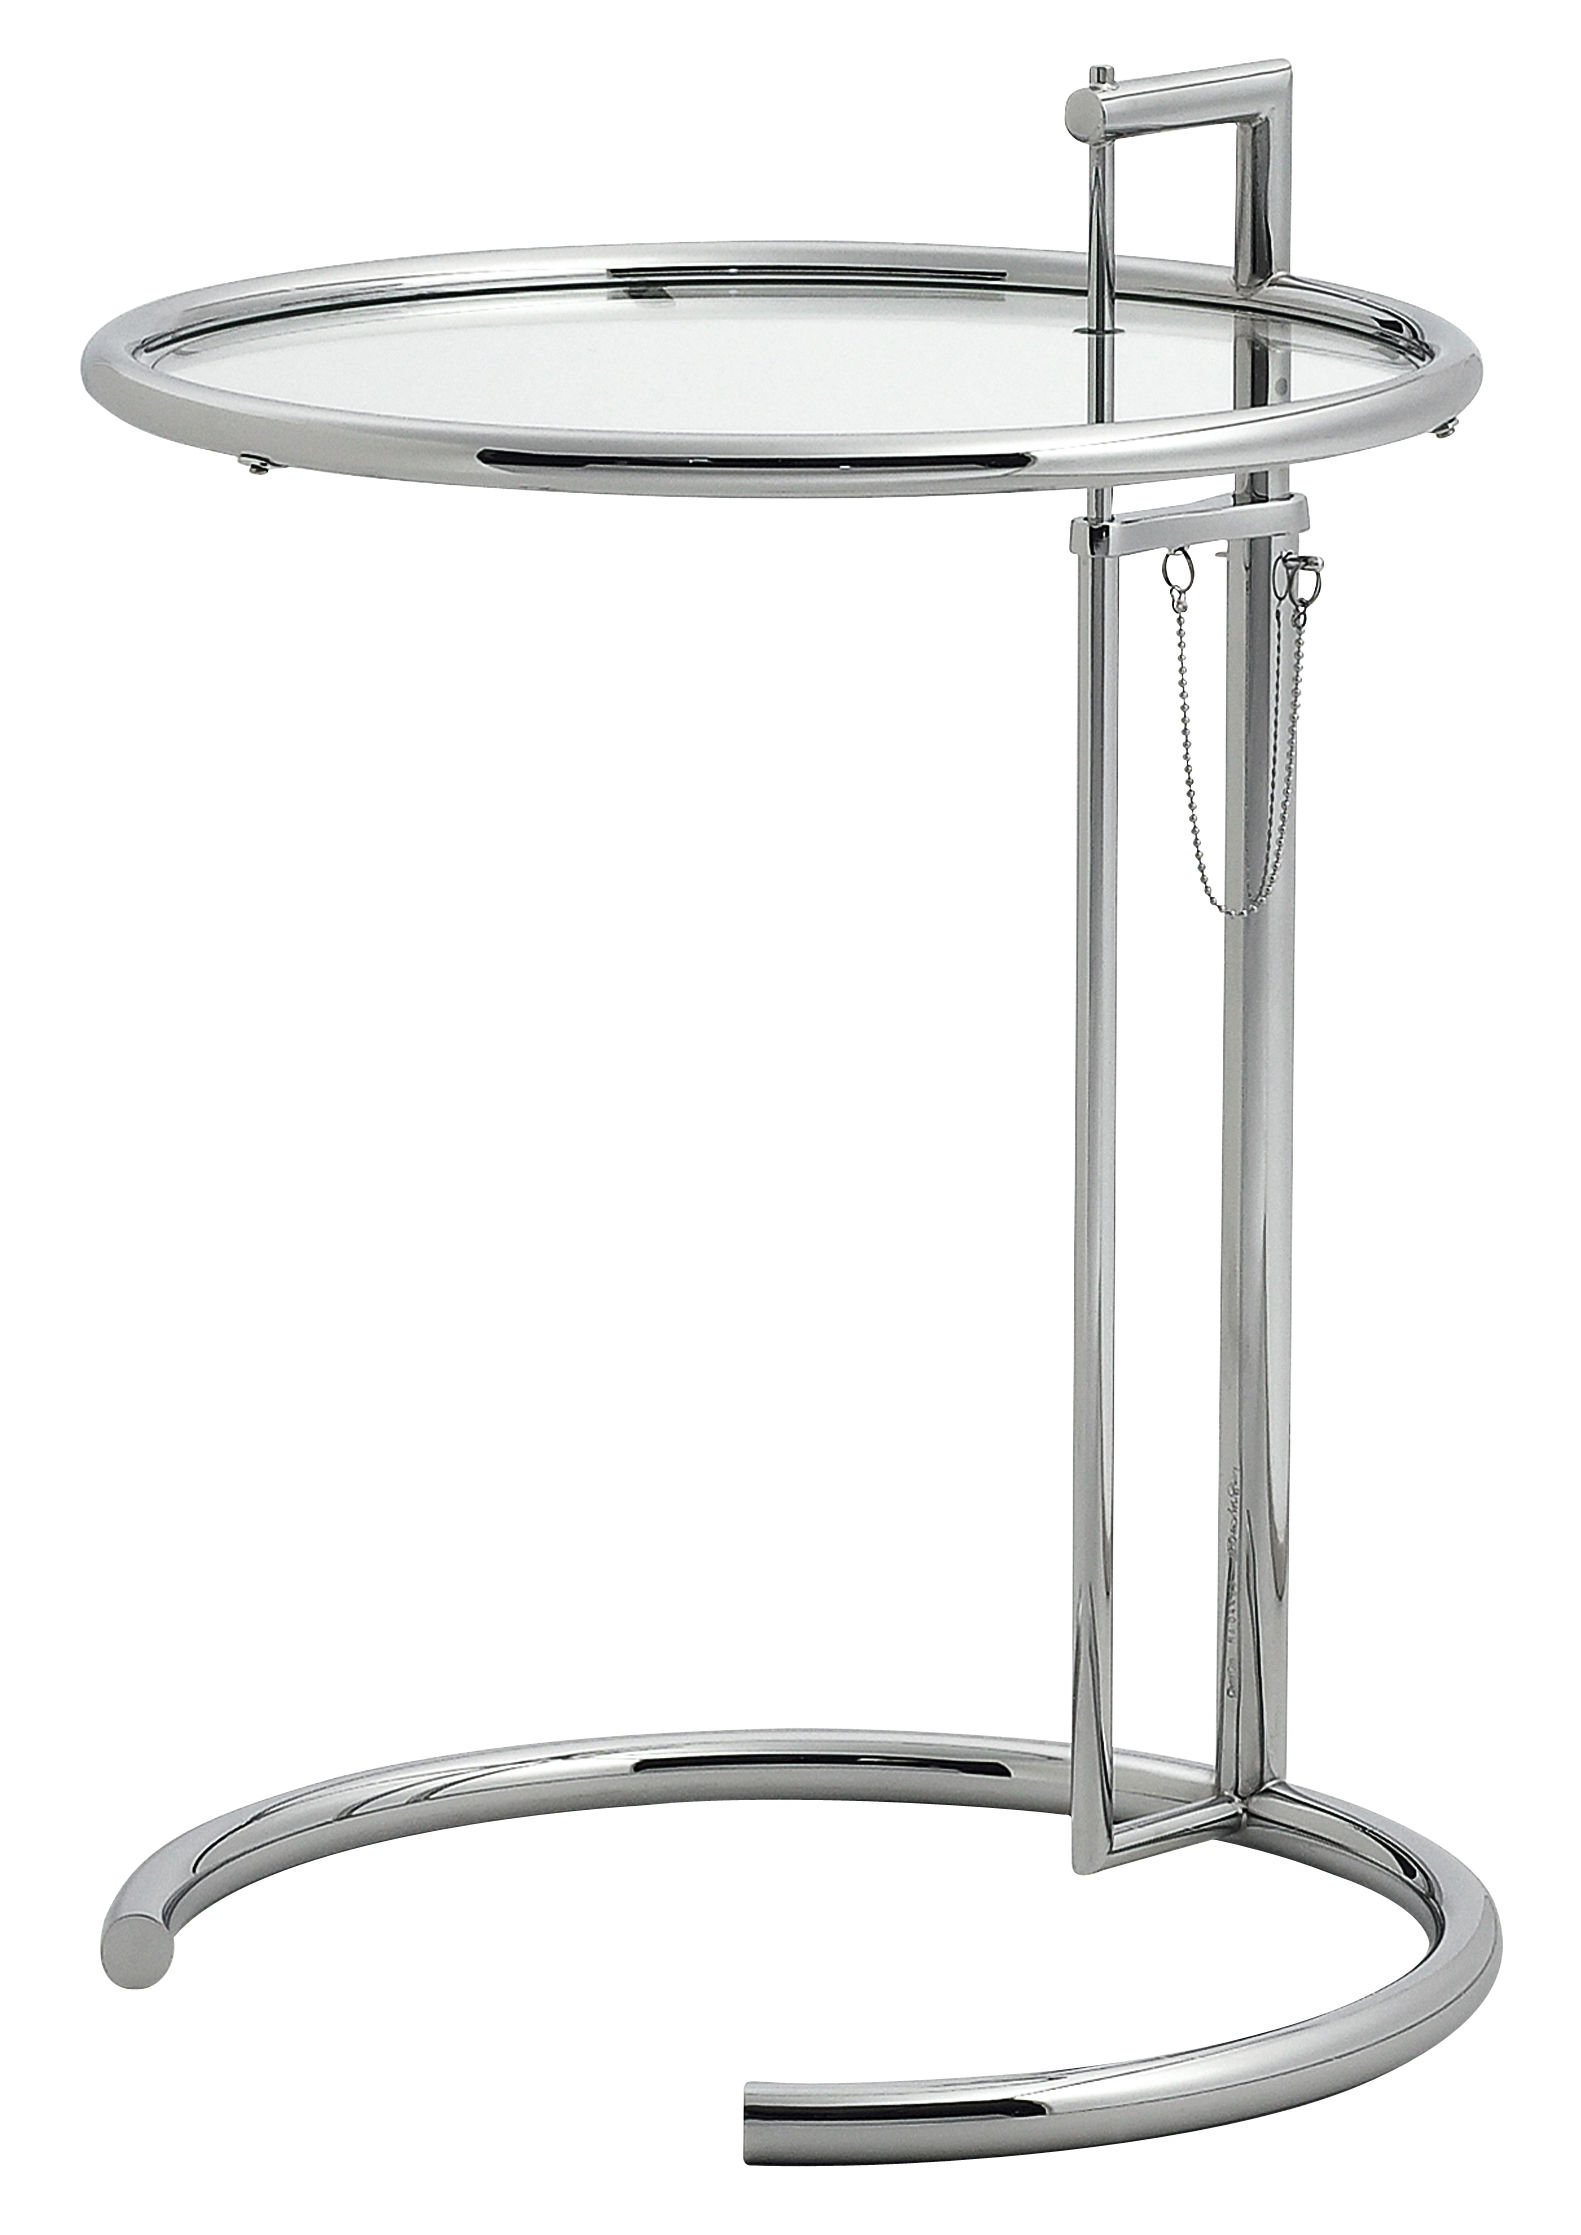 table d 39 appoint e 1027 r dition 1927 hauteur r glable chrom verre transparent. Black Bedroom Furniture Sets. Home Design Ideas